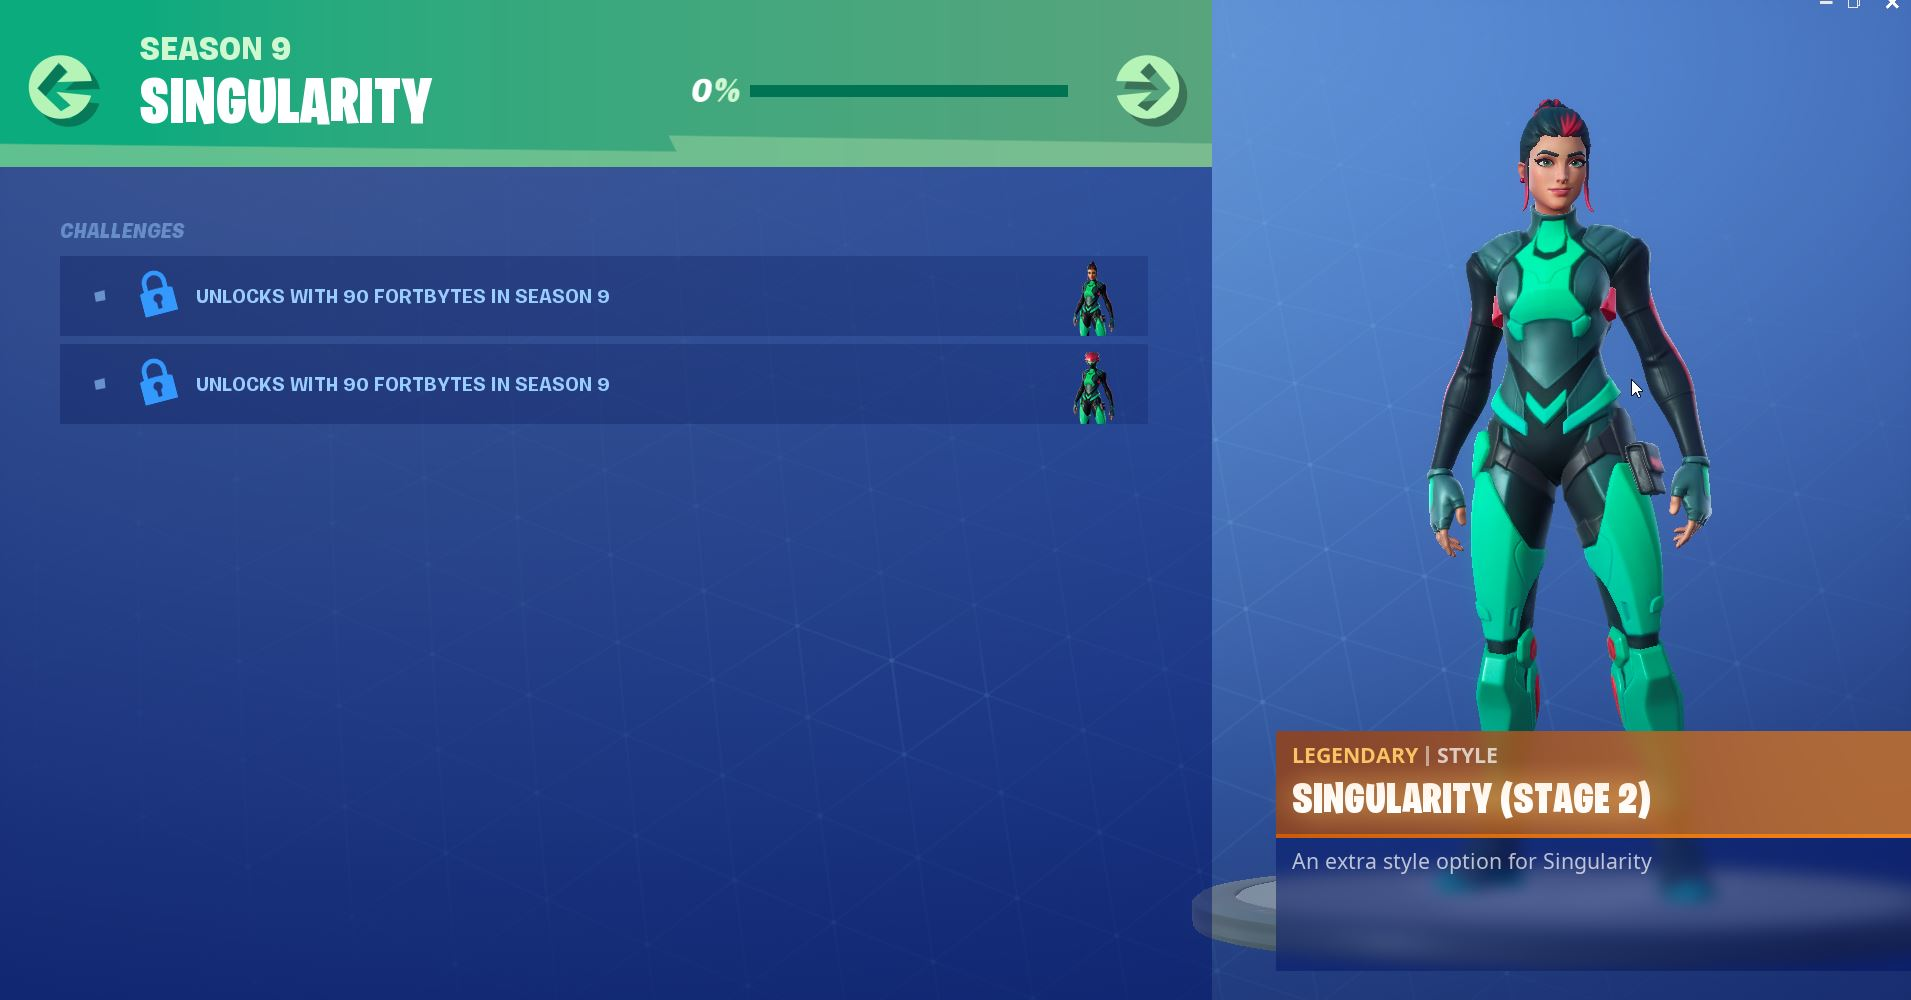 Fortnite Season 9 Mystery Secret Utopia Challenges Singularity Skin